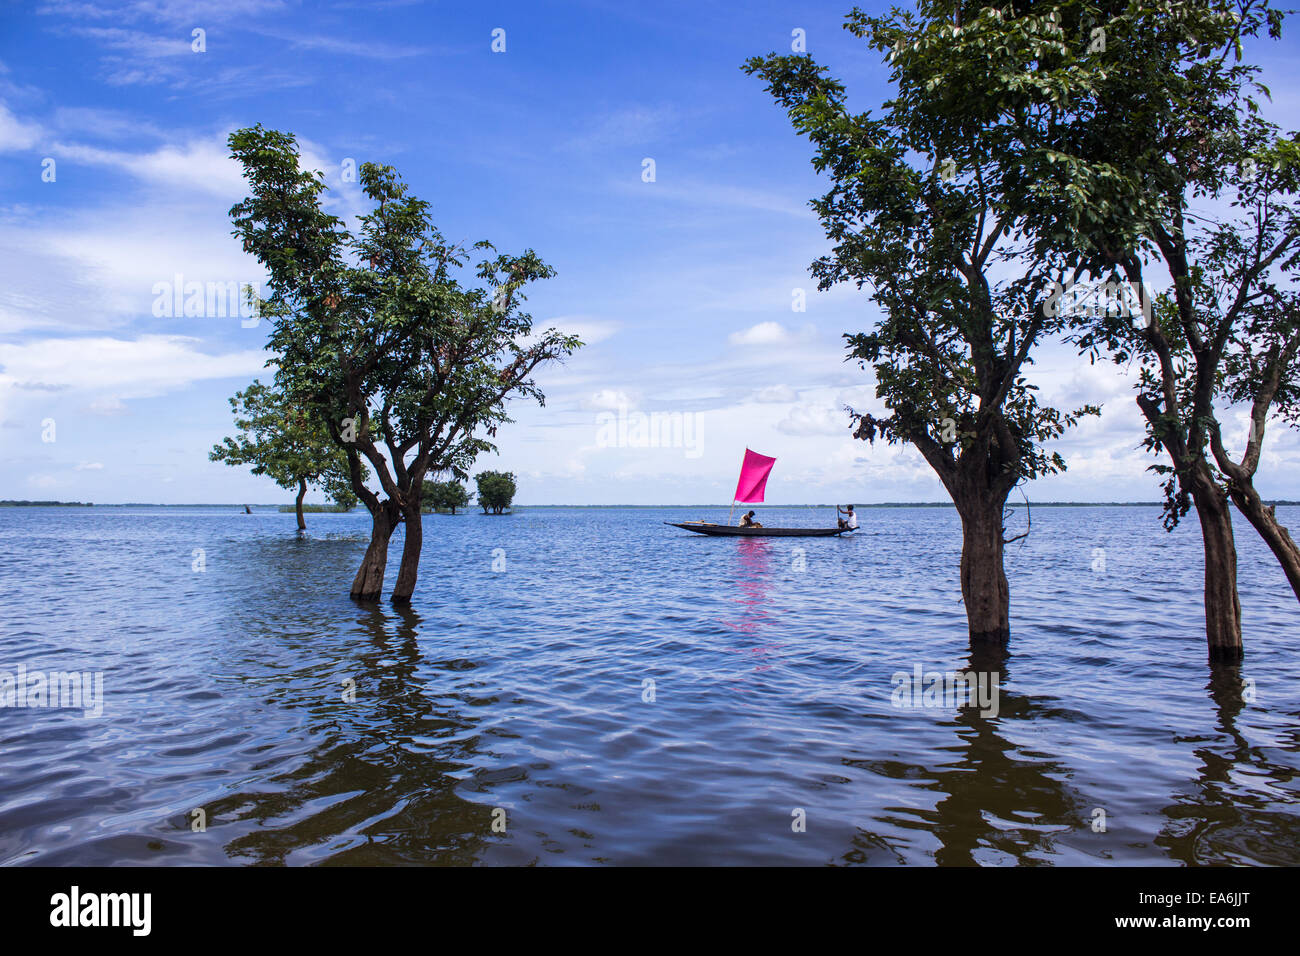 Bangladesh, Sunamganj, Boat floating on water among flooded trees - Stock Image